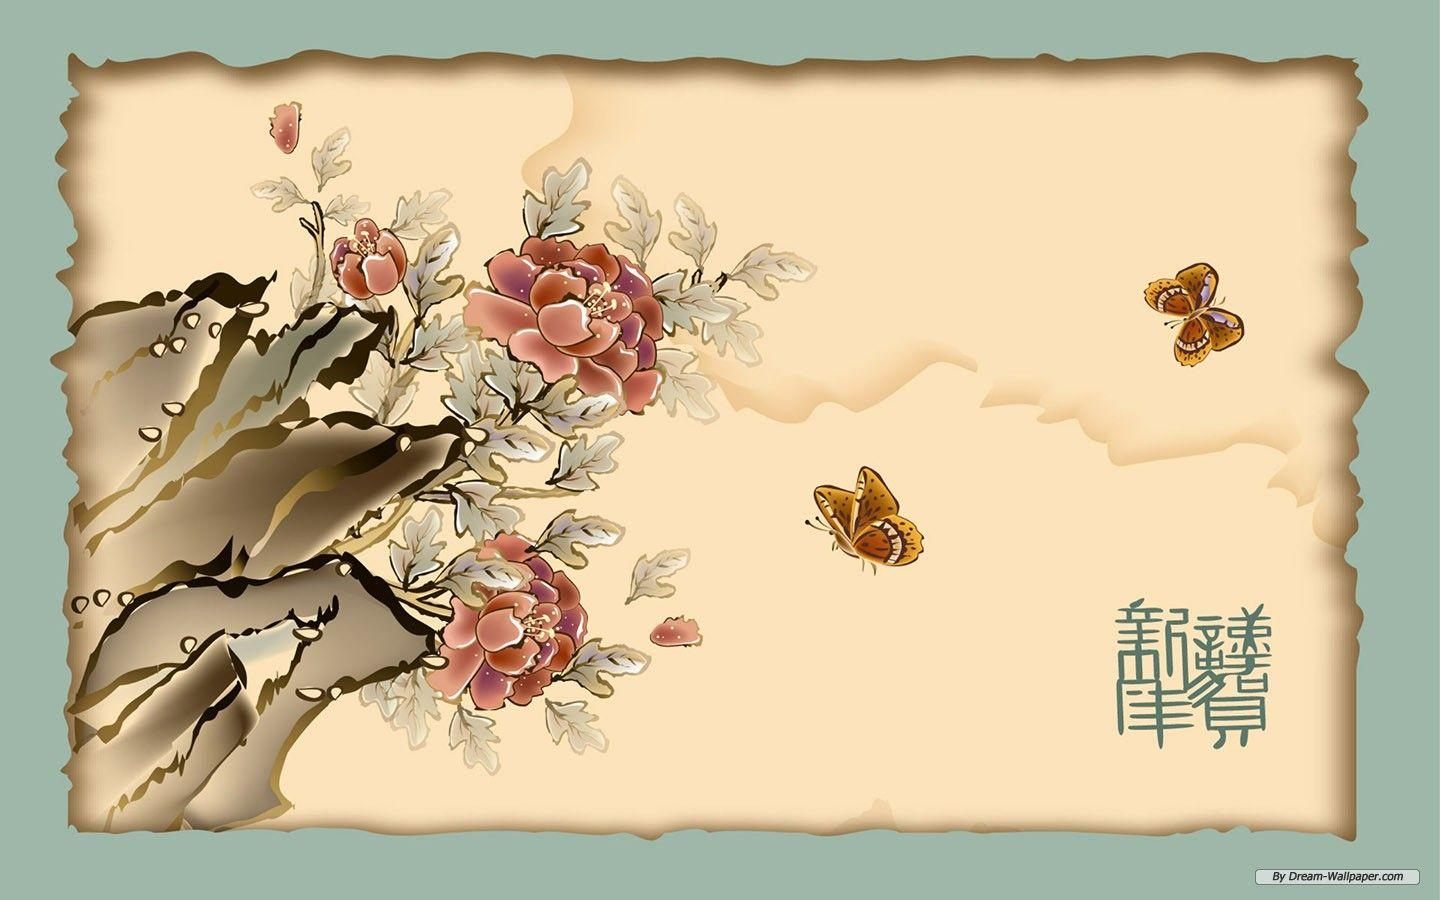 Free Wallpaper - Free Holiday wallpaper - Chinese New Year ...